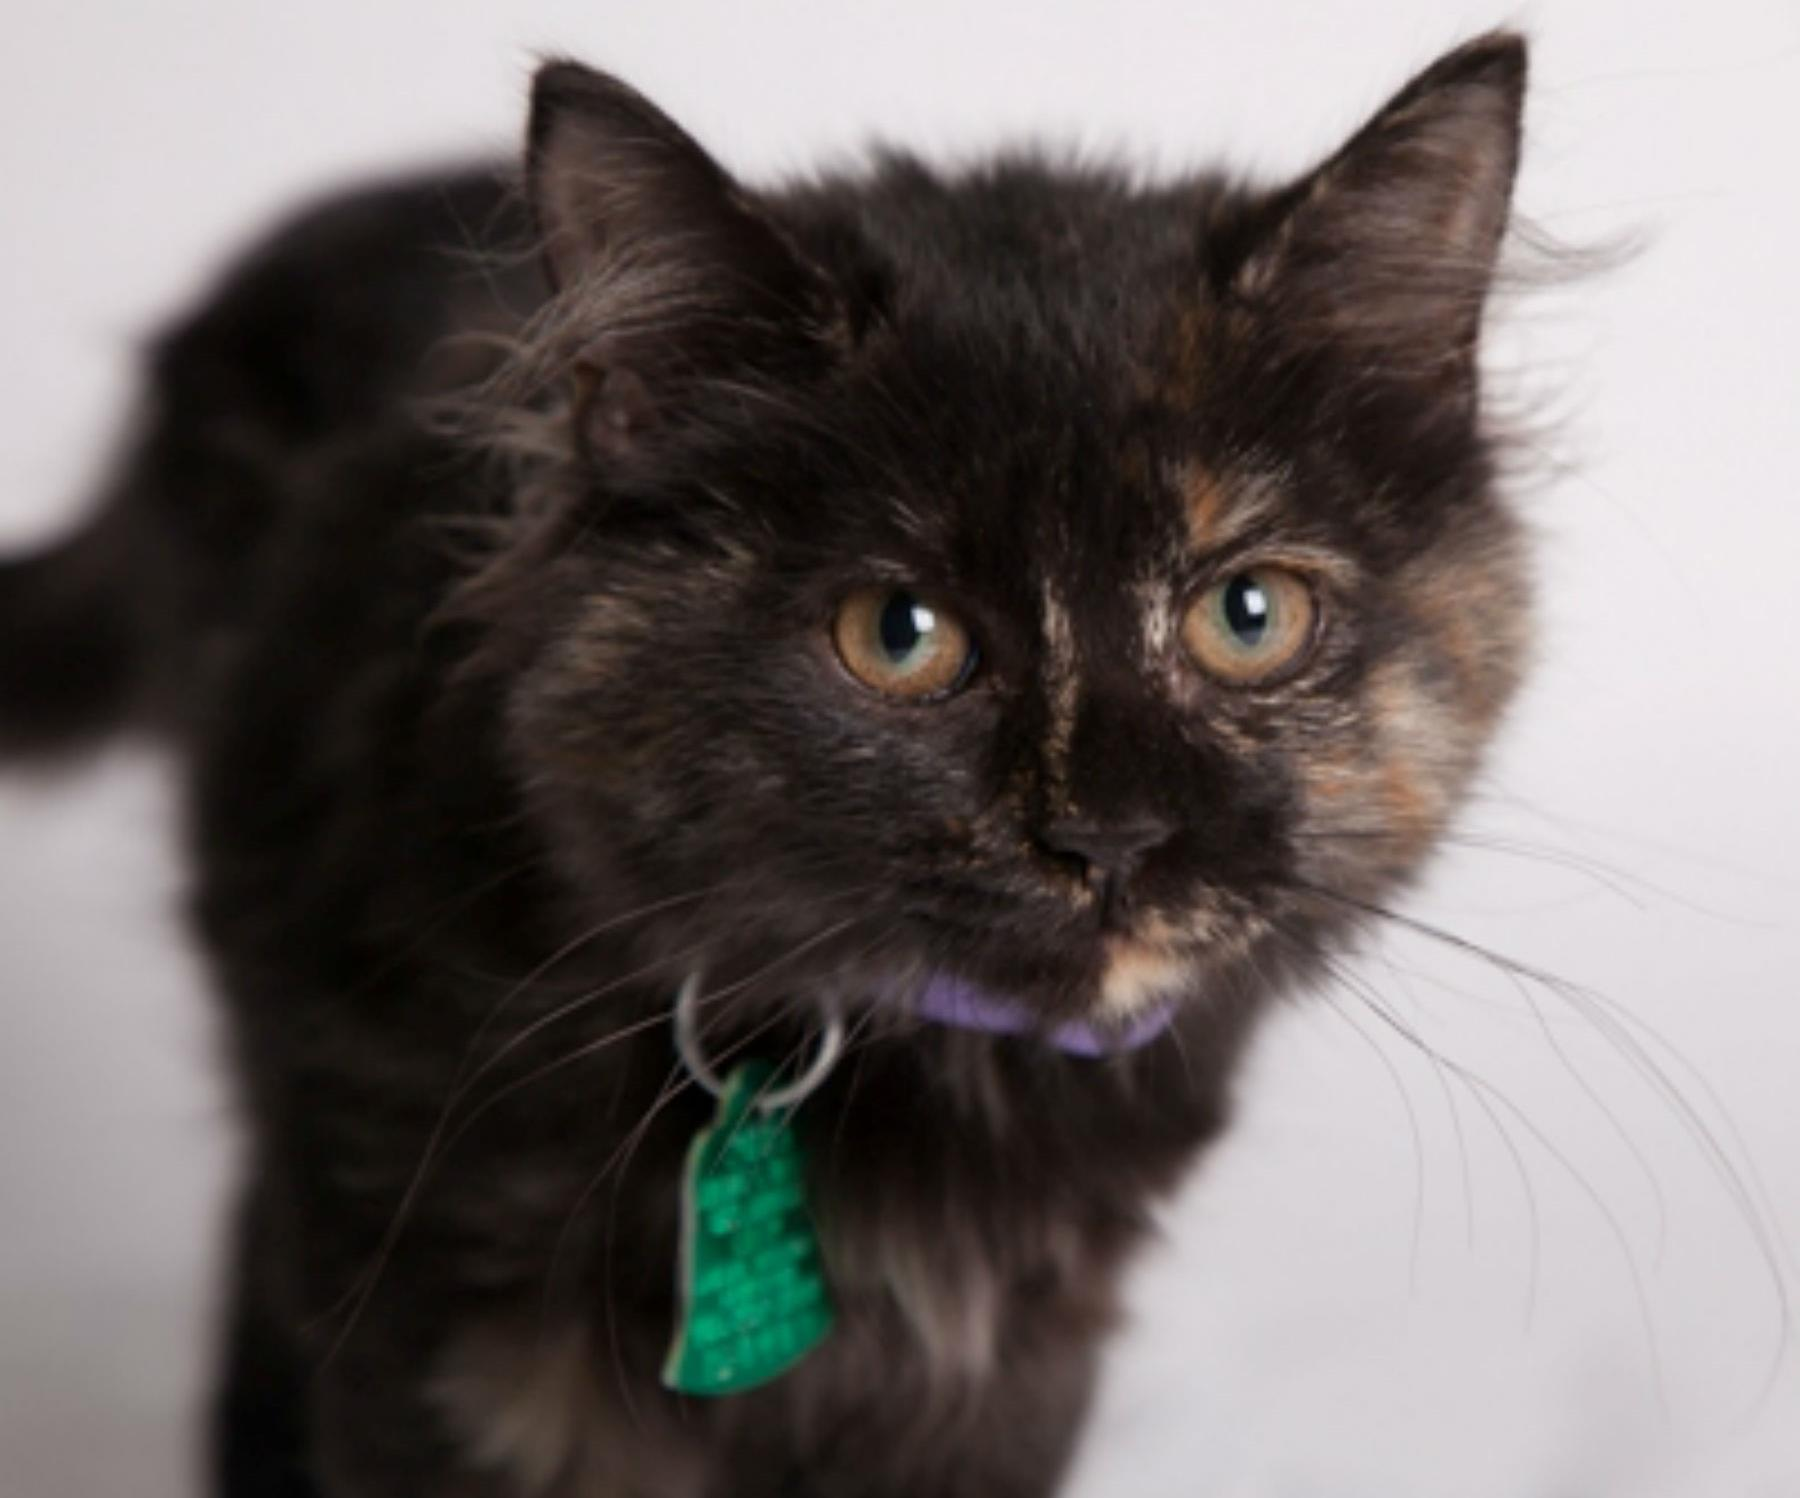 A cat with an identification tag on its collar at OKC Animal Welfare